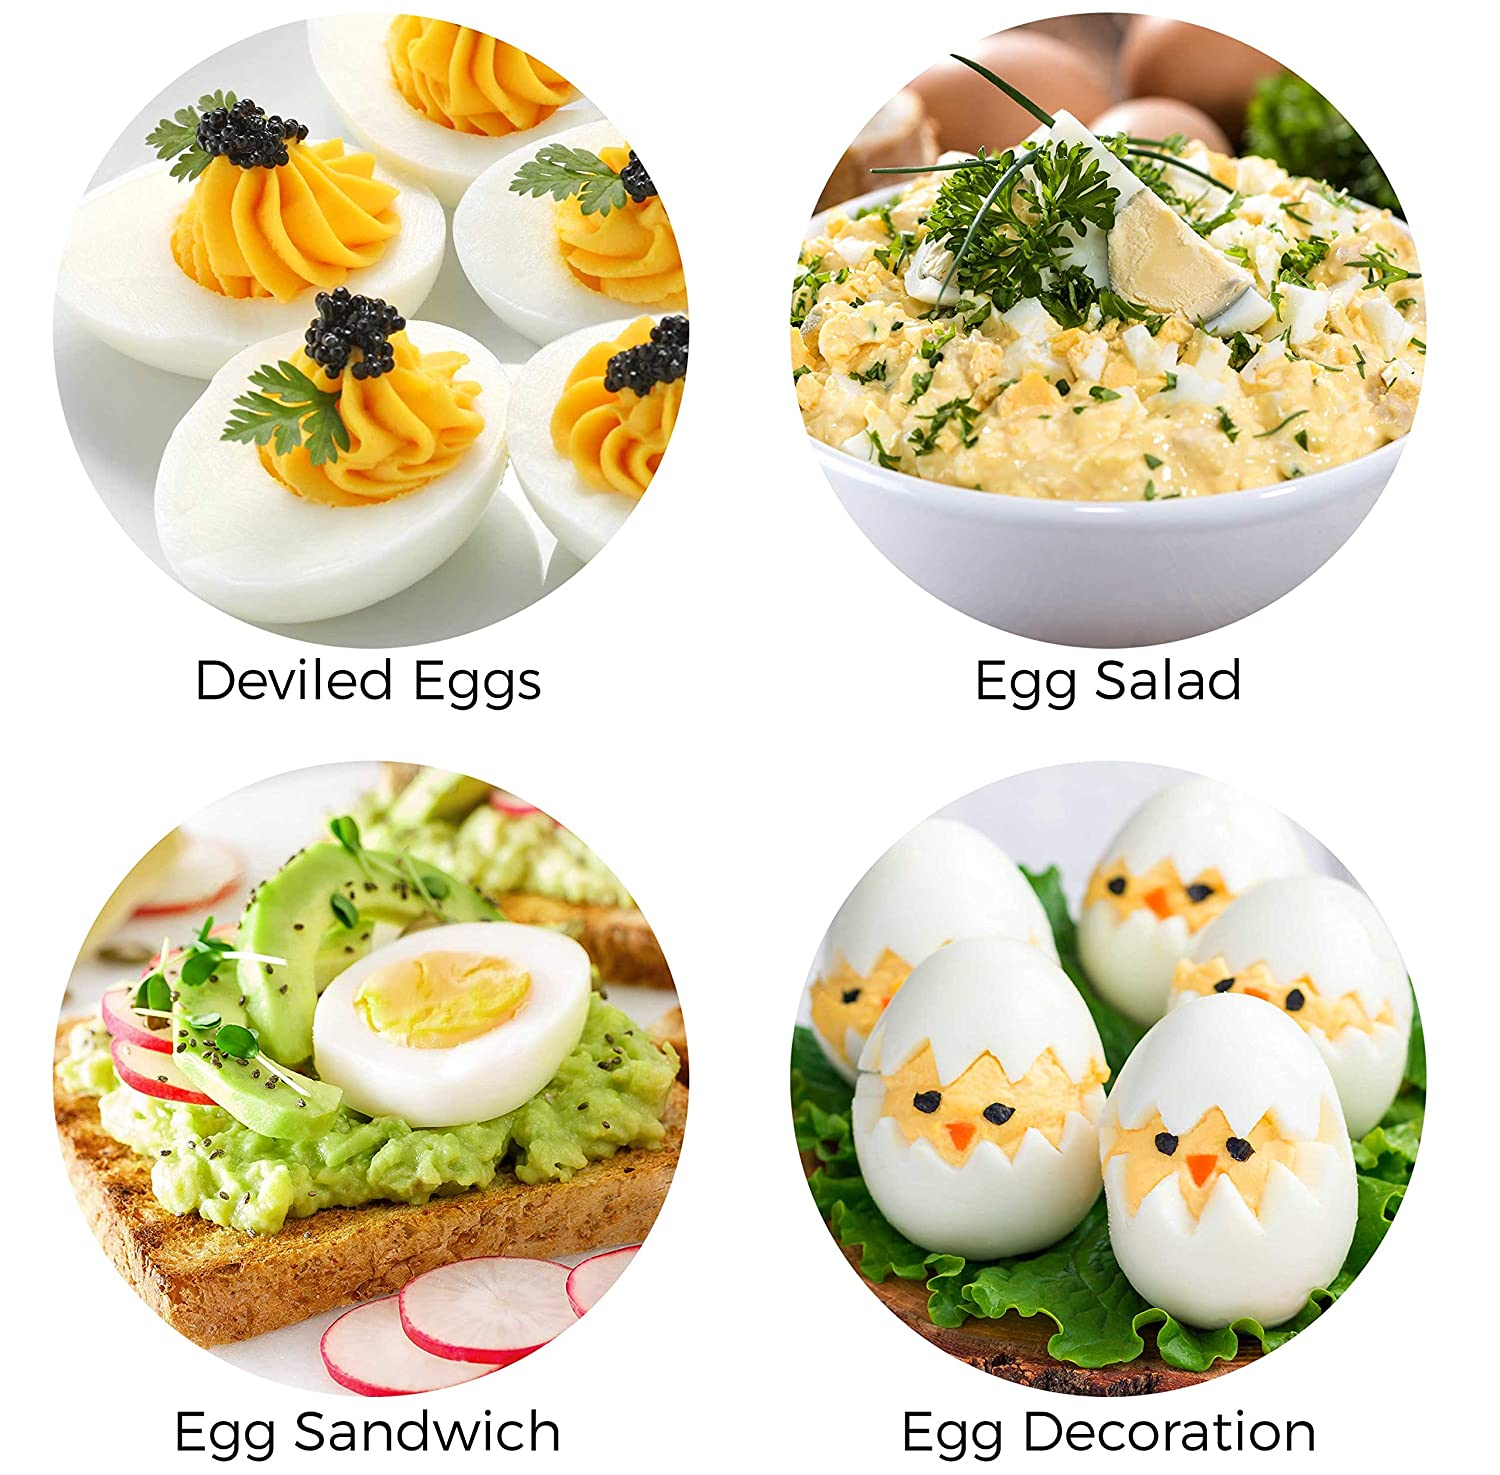 Noise-Free 7 Egg Capacity and Stainless Steel Lid Perfect for Keto Diets Hard Boiled Egg Maker with Auto Shut-Off Mueller Rapid Egg Cooker